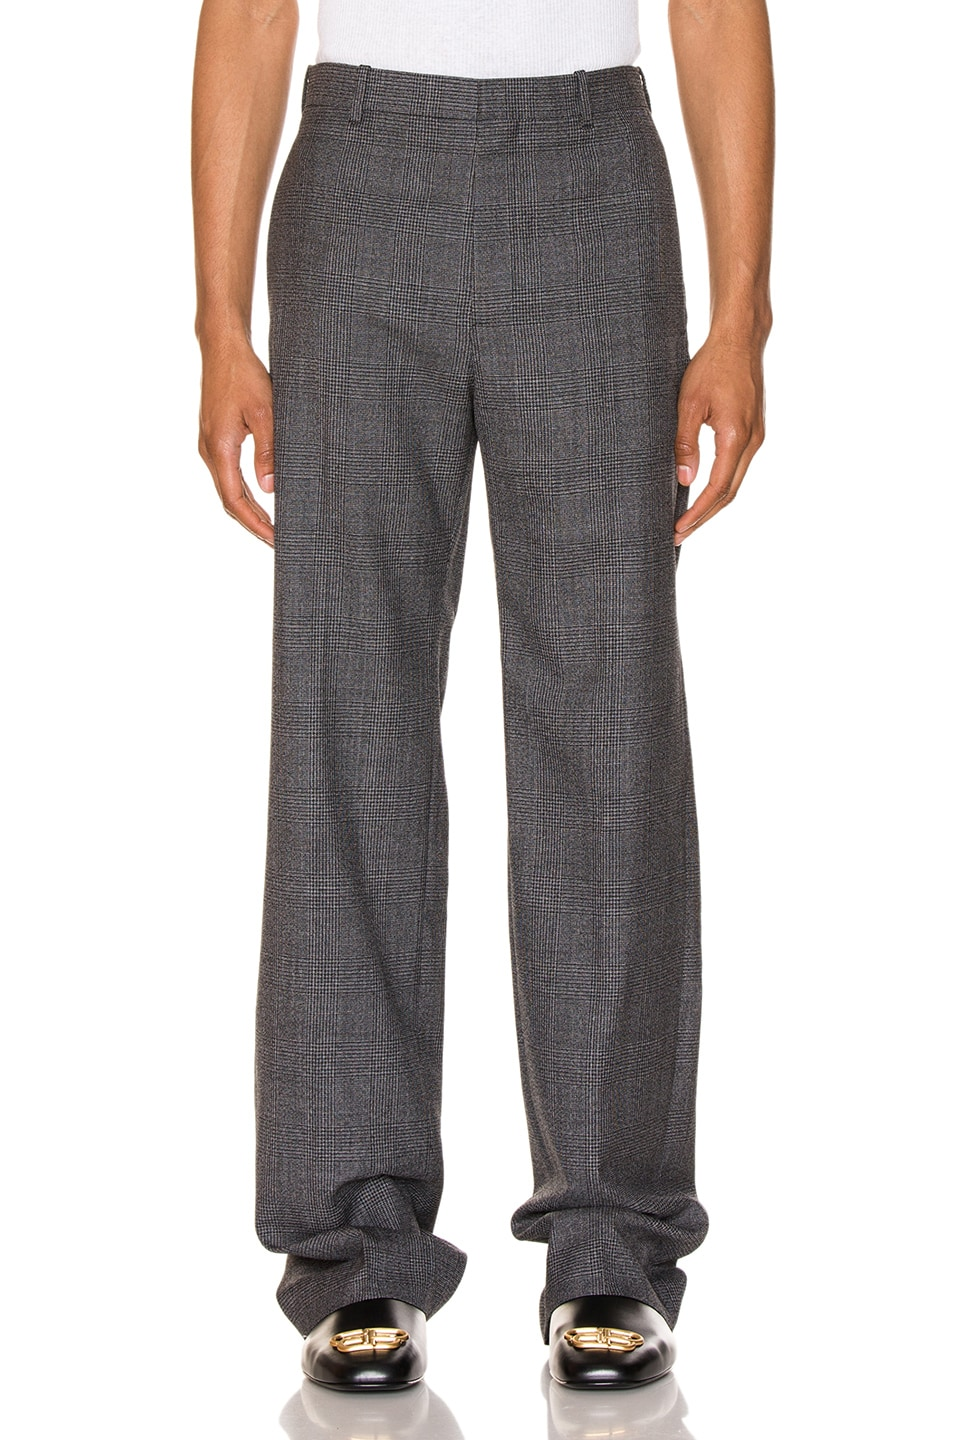 Balenciaga Pants Prince of Wales Tailored Pants